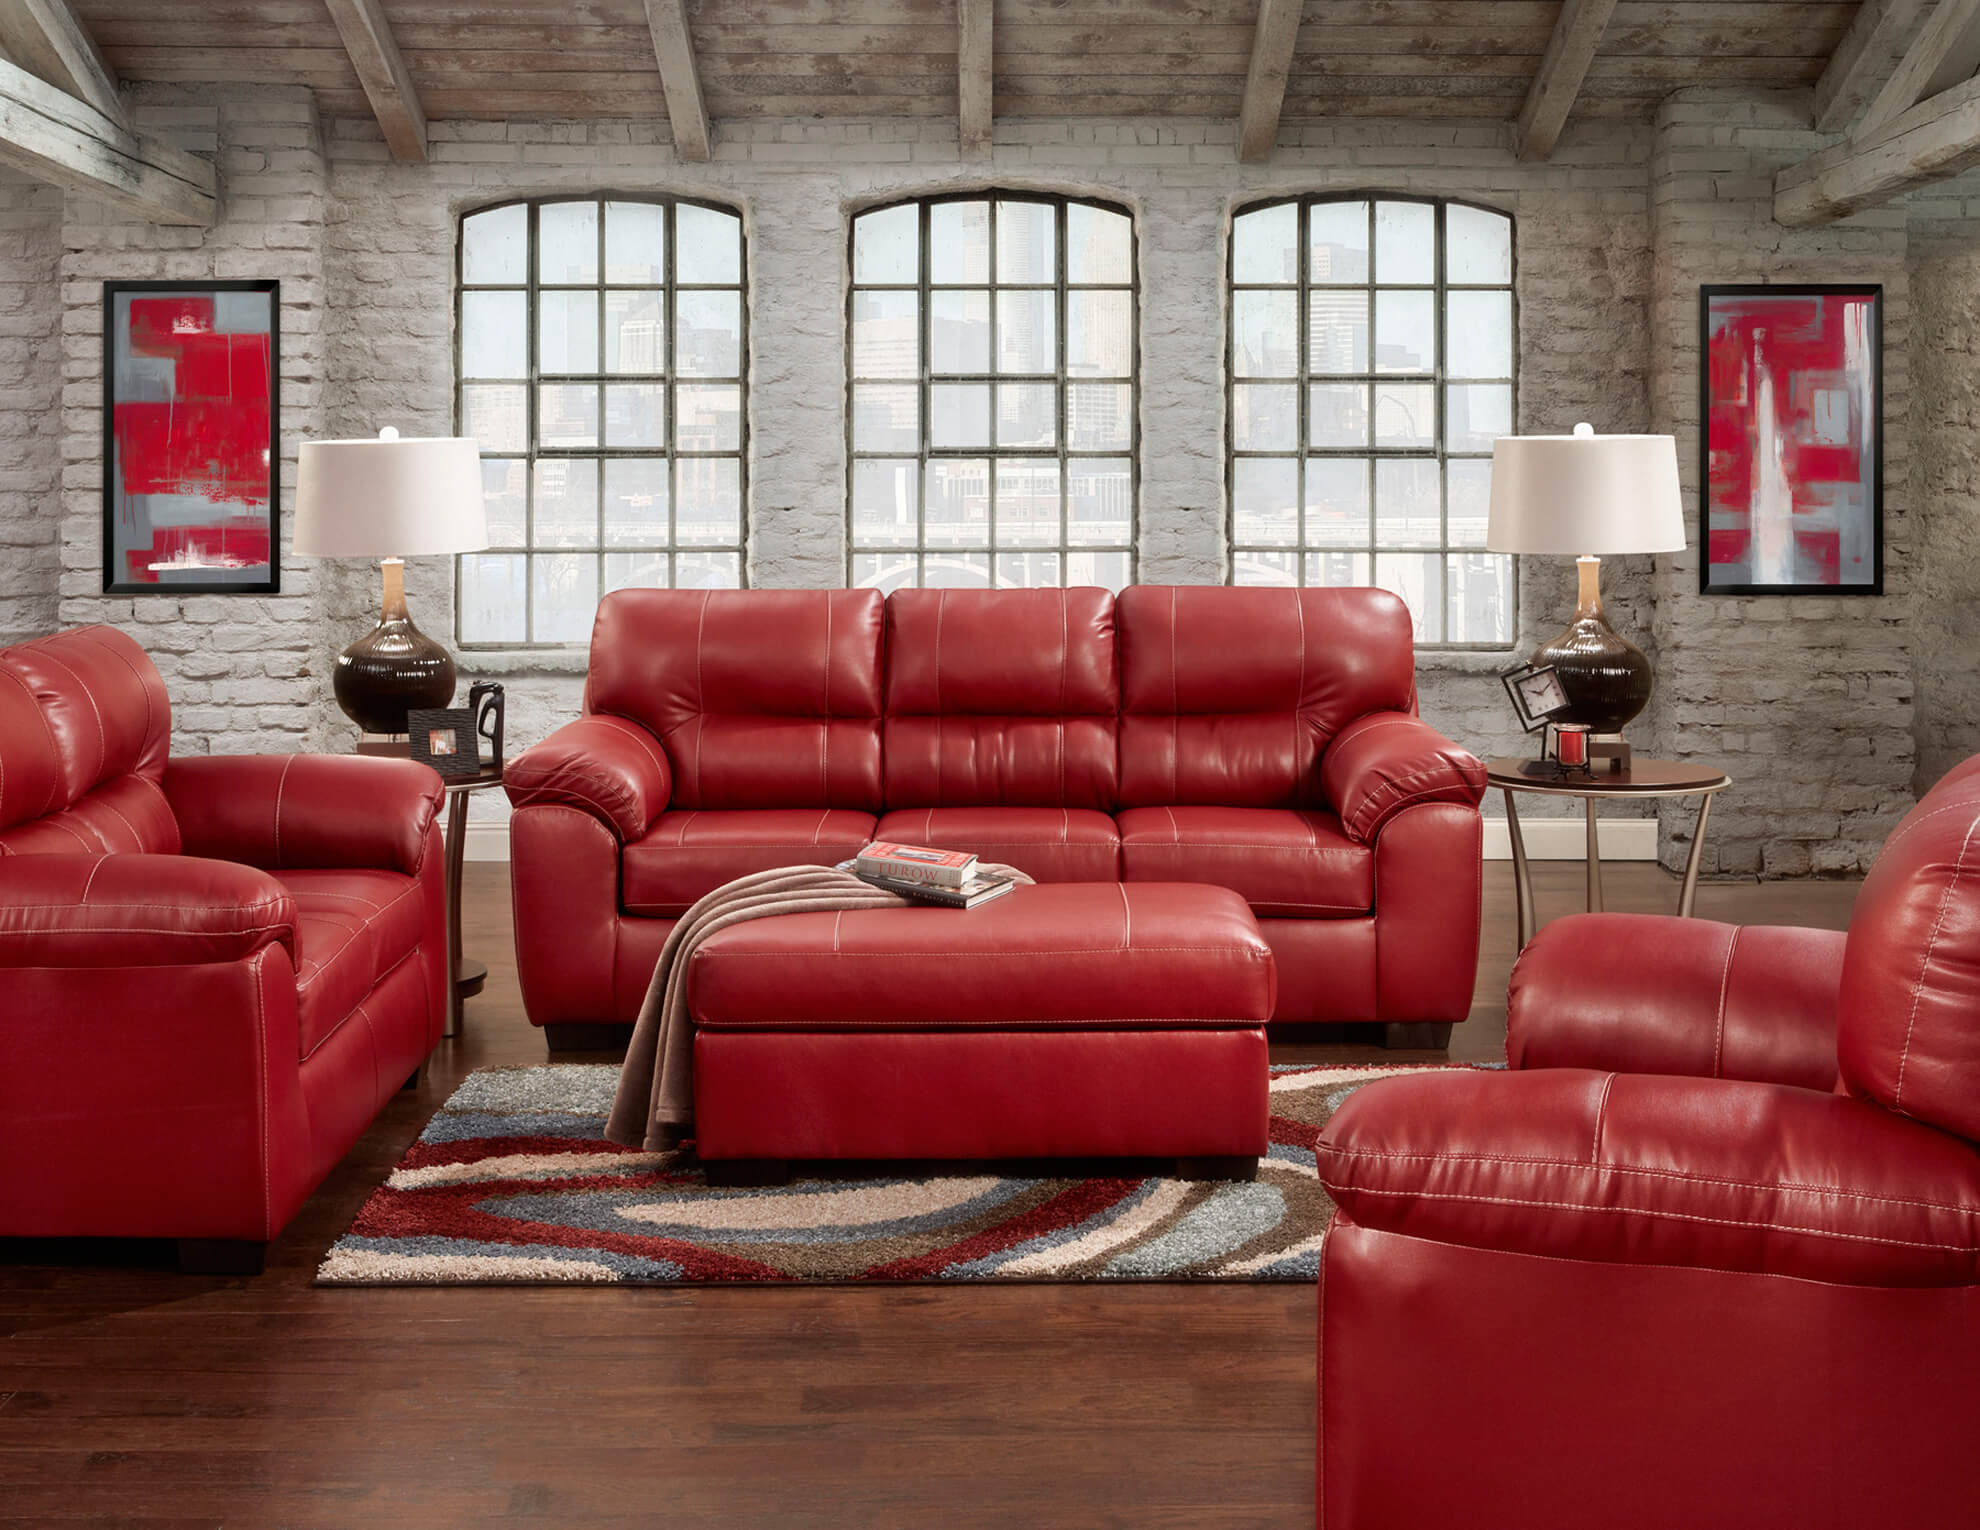 Austin Red Sofa And Loveseat Leather Living Room Sets for 11 Some of the Coolest Initiatives of How to Improve Red Leather Living Room Set